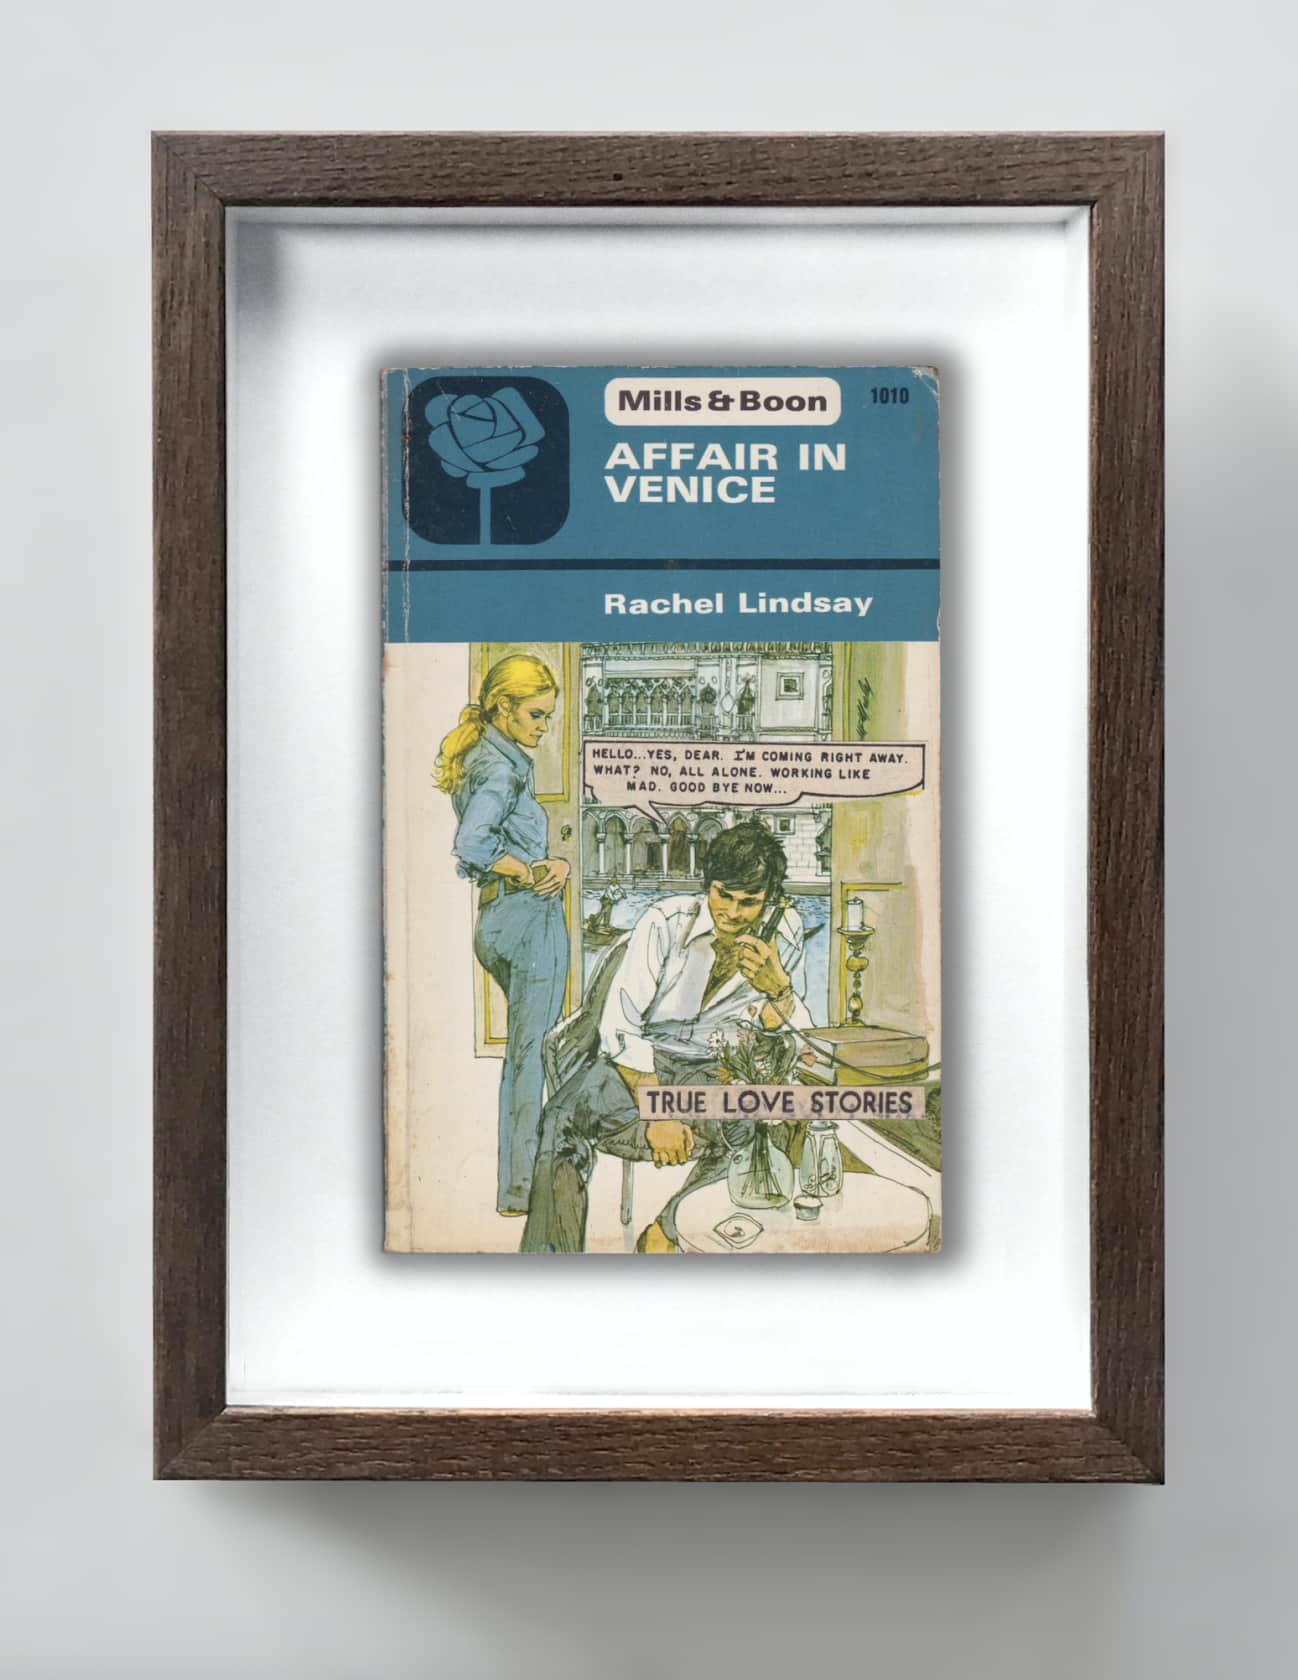 the connor brothers Working Like Mad Collage on vintage paperback book